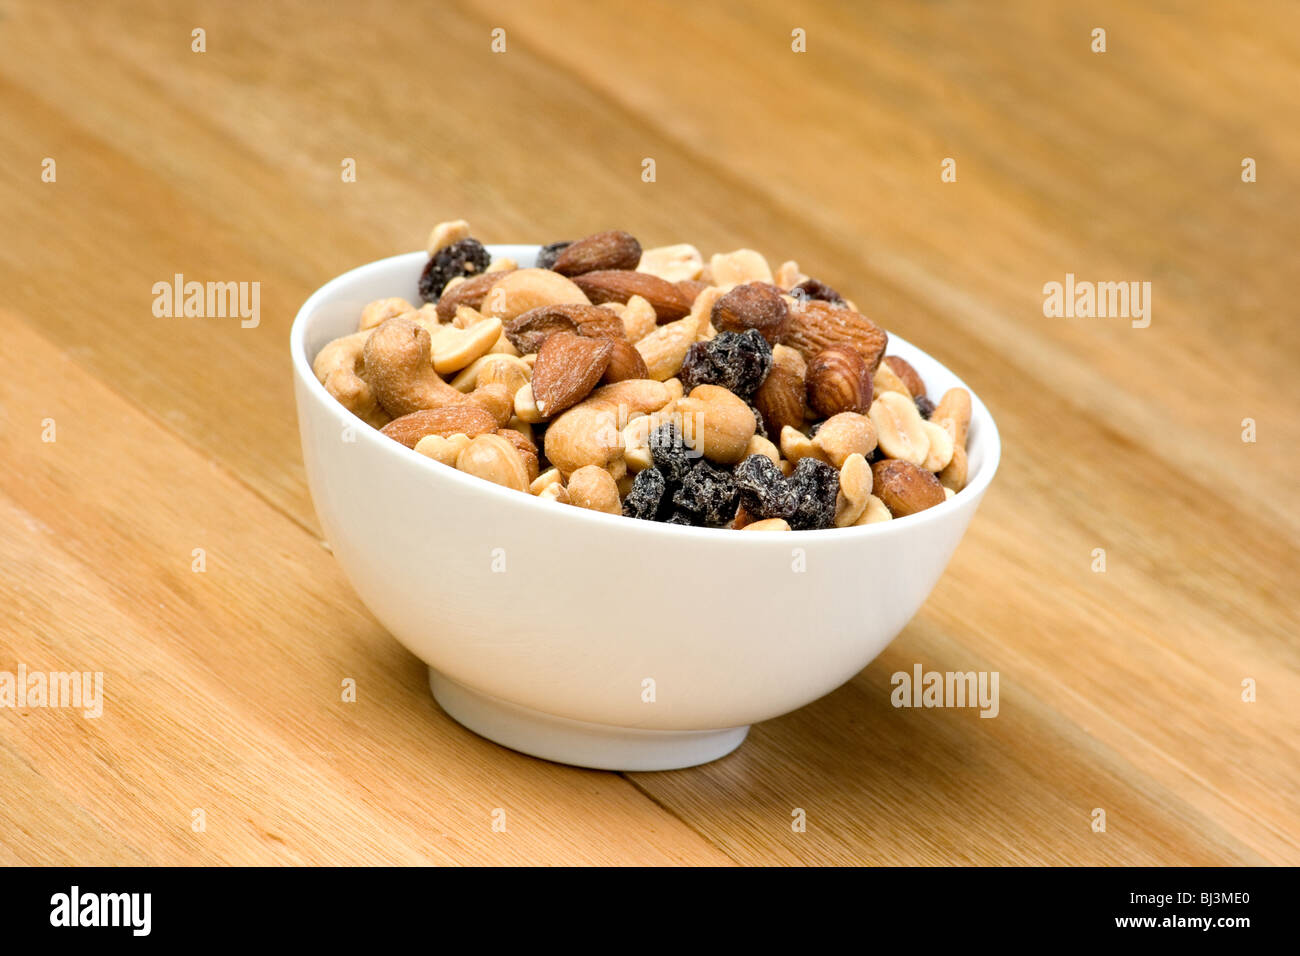 Mixed nuts in a bowl - Stock Image